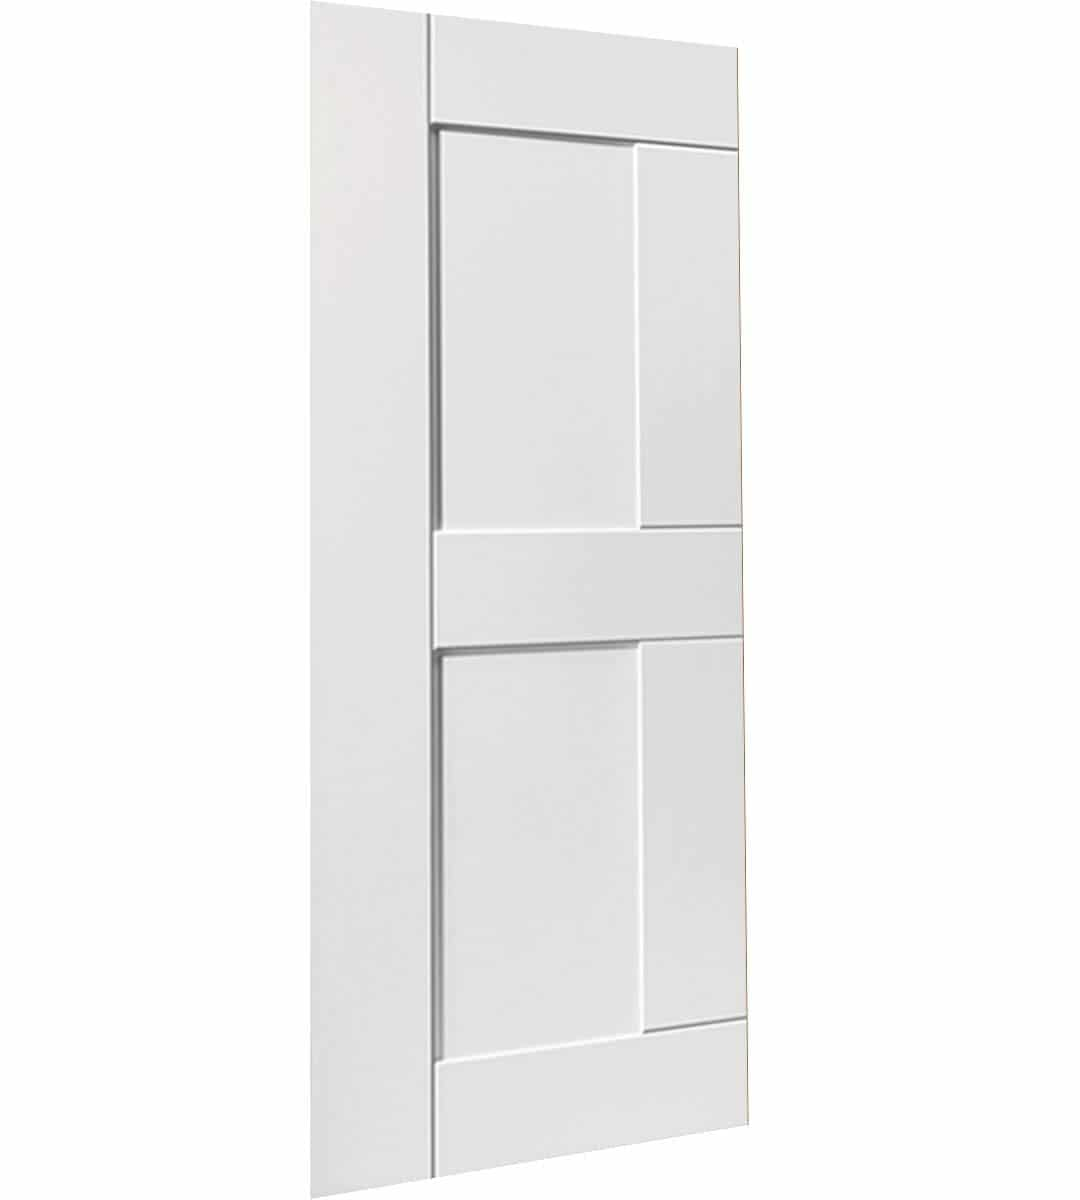 eccentro white internal door